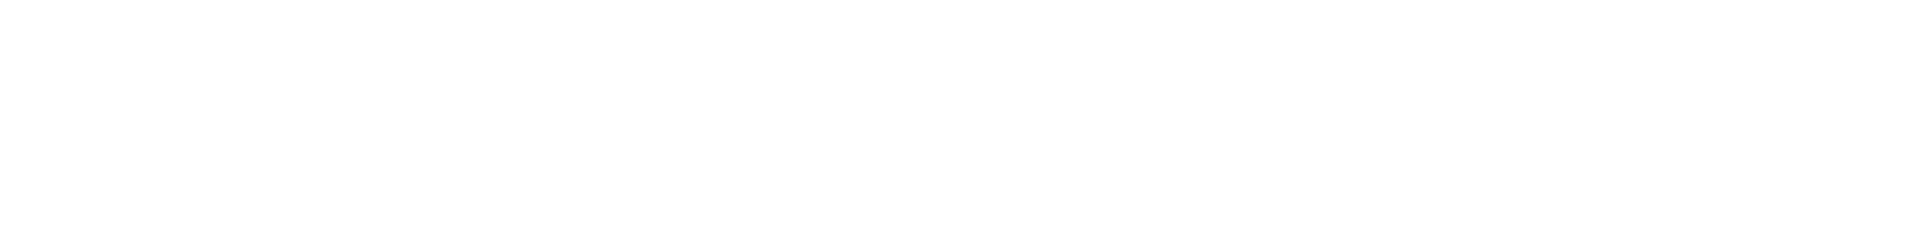 Our Clients: Georgia Landscape, Massey Services, Premier Pools